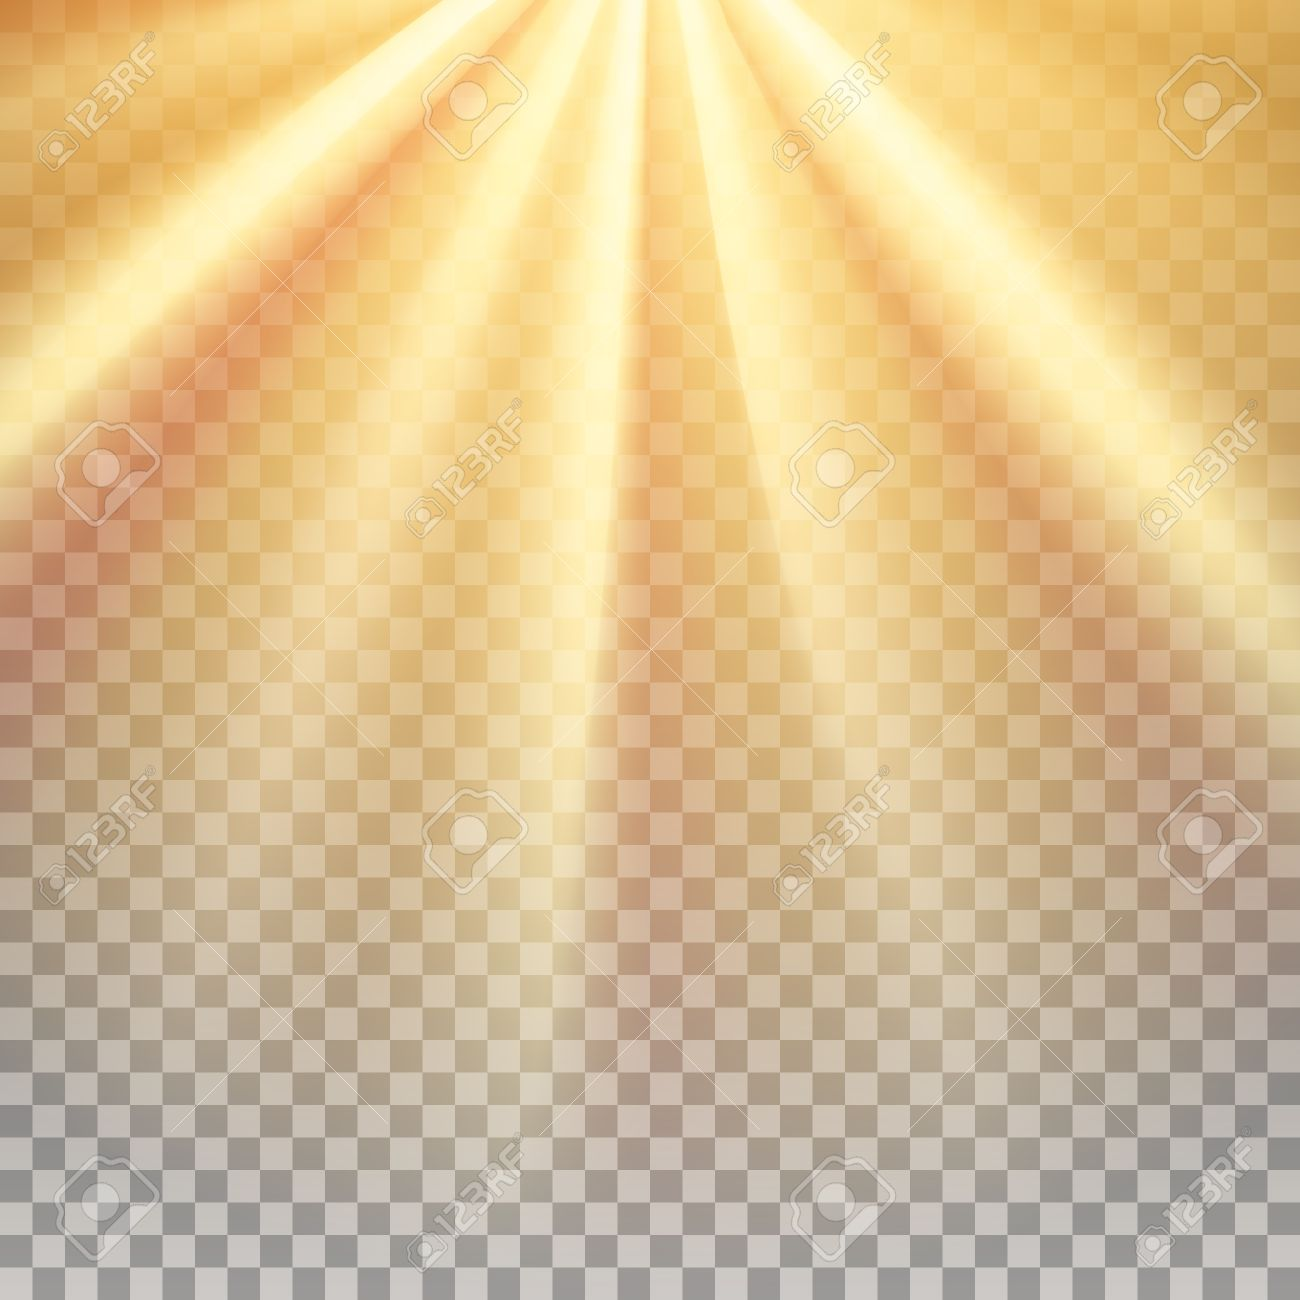 Yellow sun rays. Warm orange flare. Glaring effect with transparency. Abstract glowing light background. - 56554614